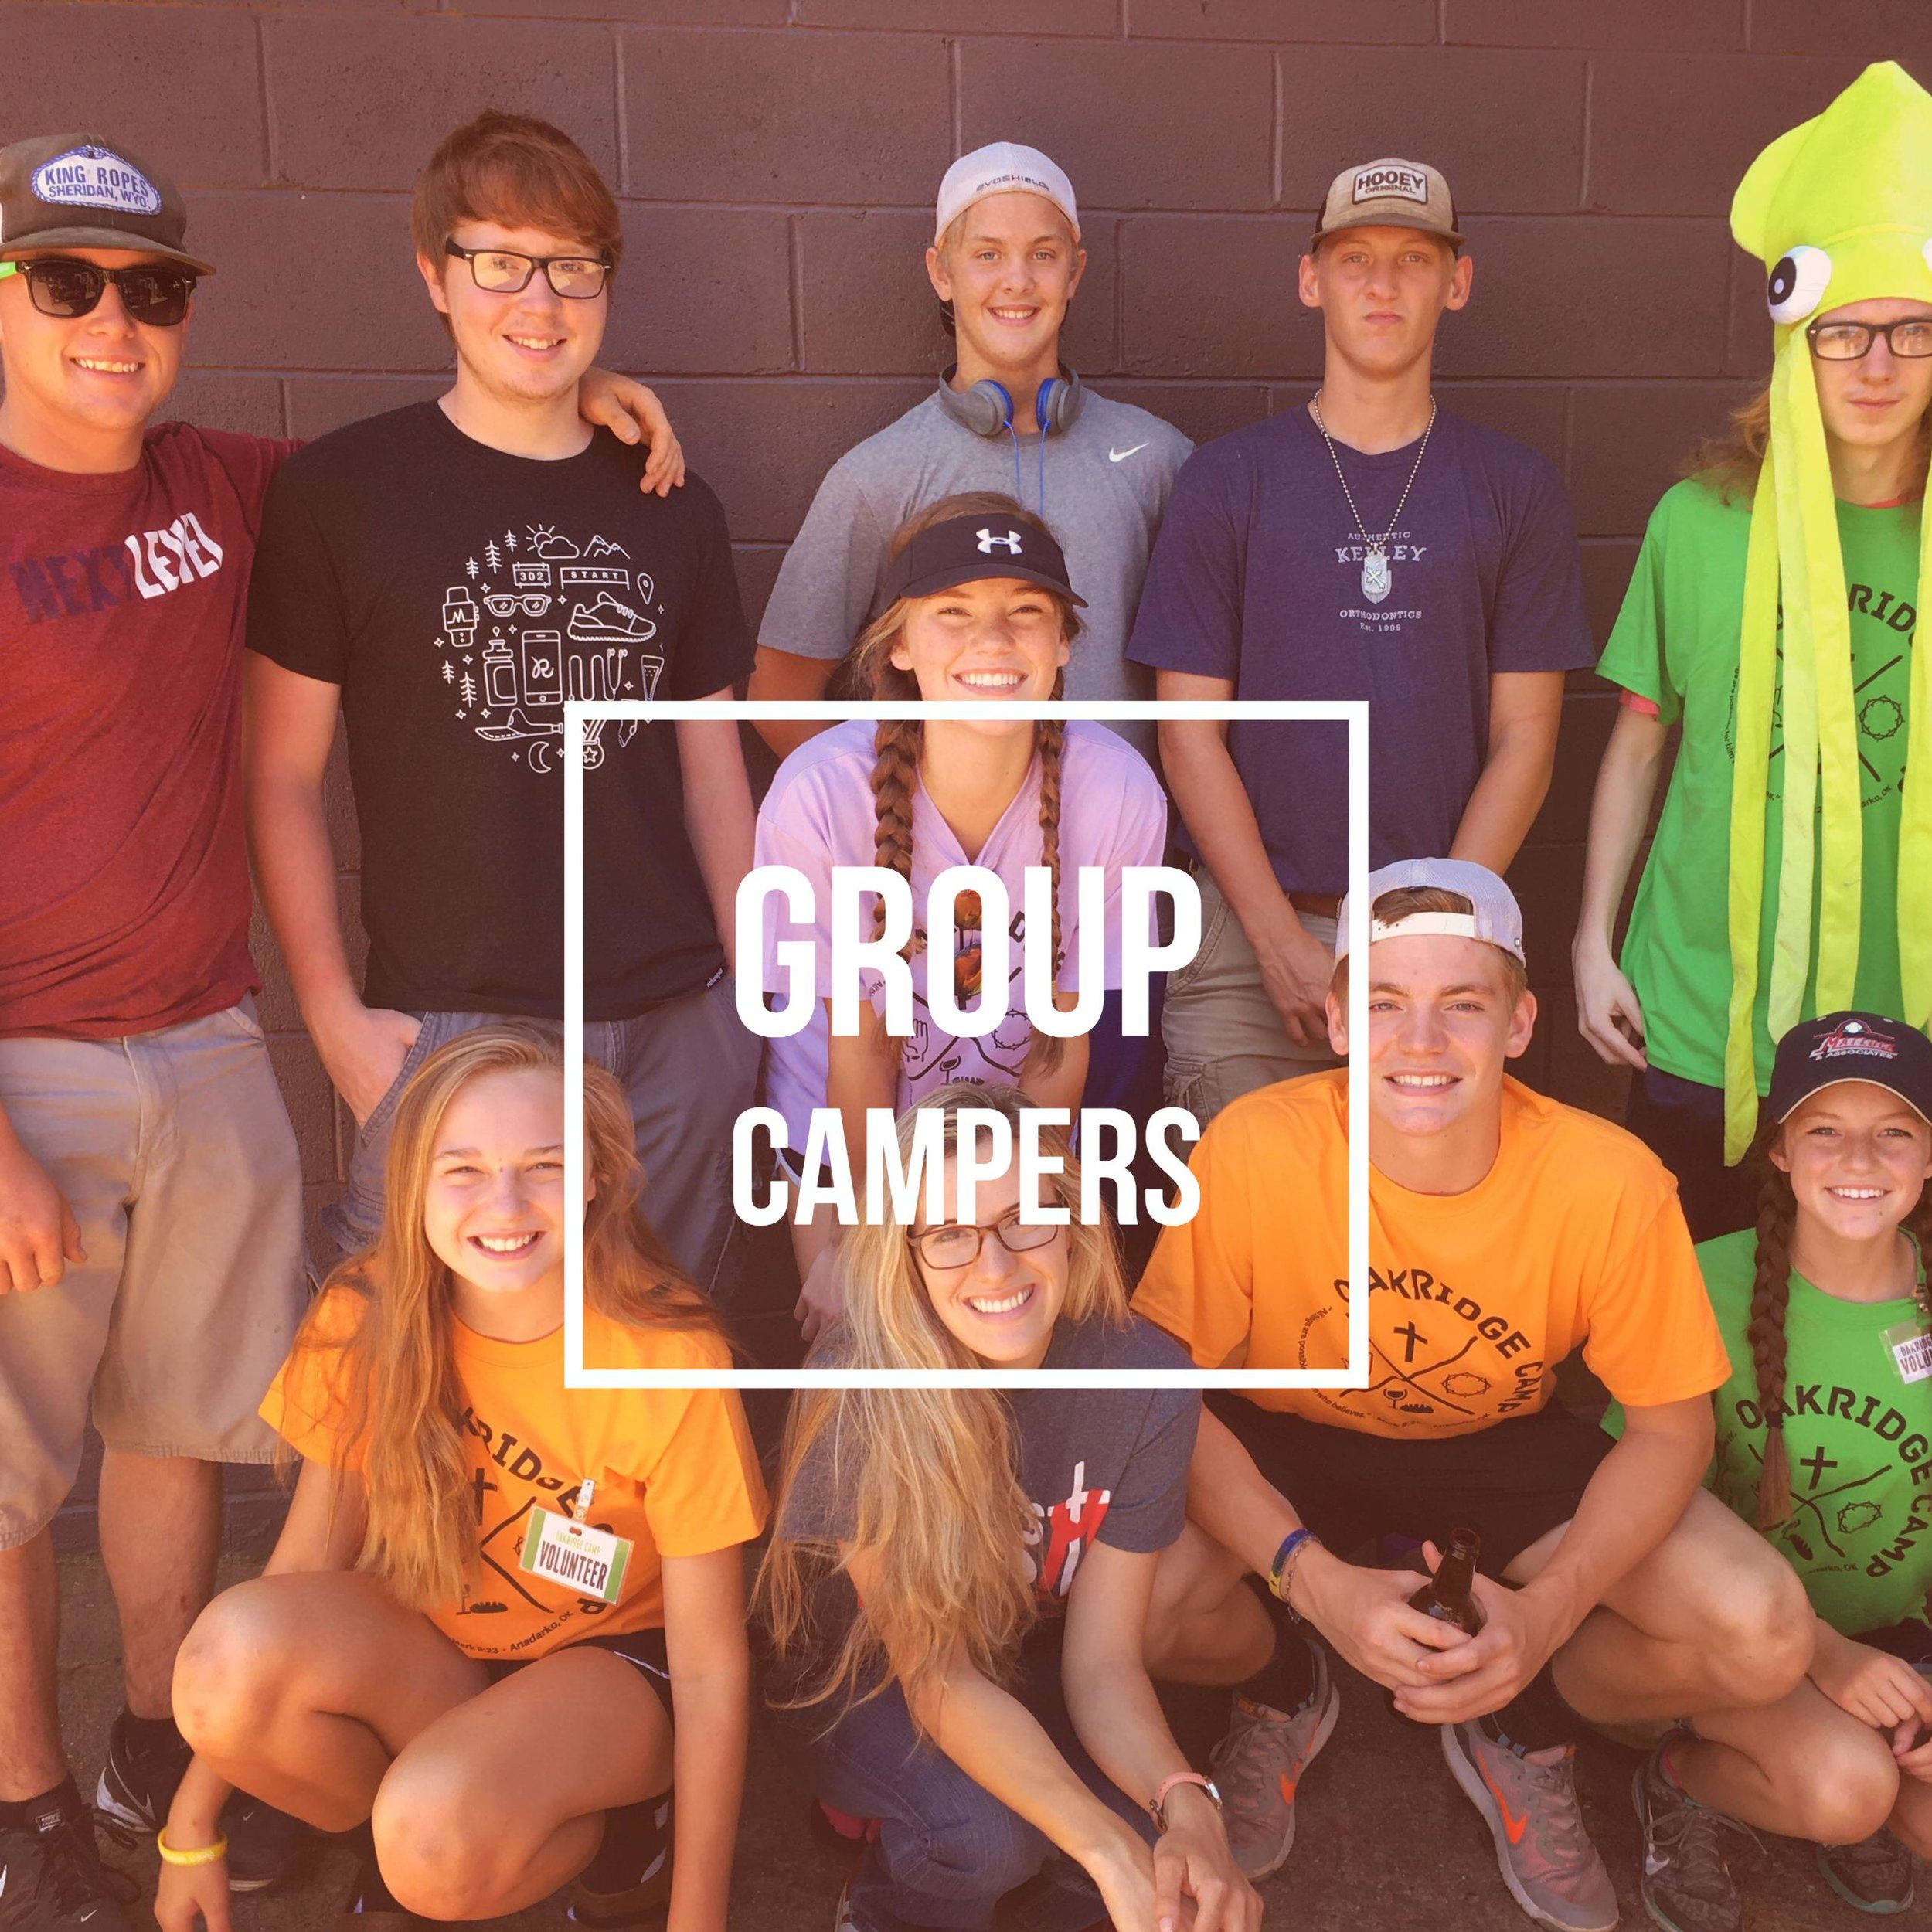 Click above to get information about group registration! Intended for groups of at least 10 people, with your group providing adult counselors for the entire camp experience.